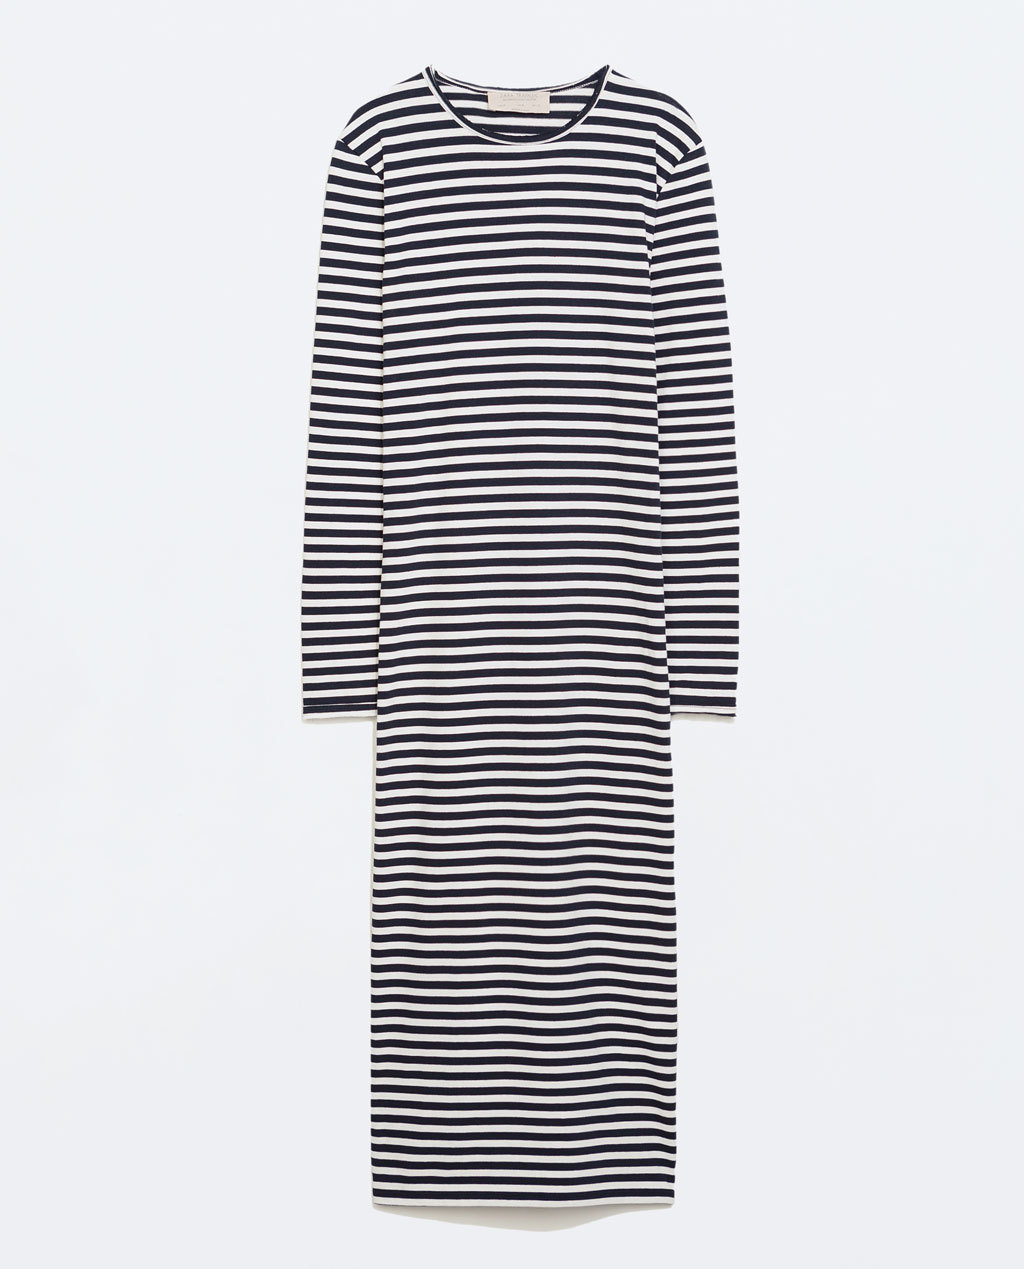 Striped Dress - style: t-shirt; length: calf length; pattern: horizontal stripes; secondary colour: white; predominant colour: navy; occasions: casual, creative work; fit: body skimming; fibres: cotton - 100%; neckline: crew; sleeve length: long sleeve; sleeve style: standard; texture group: jersey - clingy; pattern type: fabric; pattern size: standard; season: a/w 2014